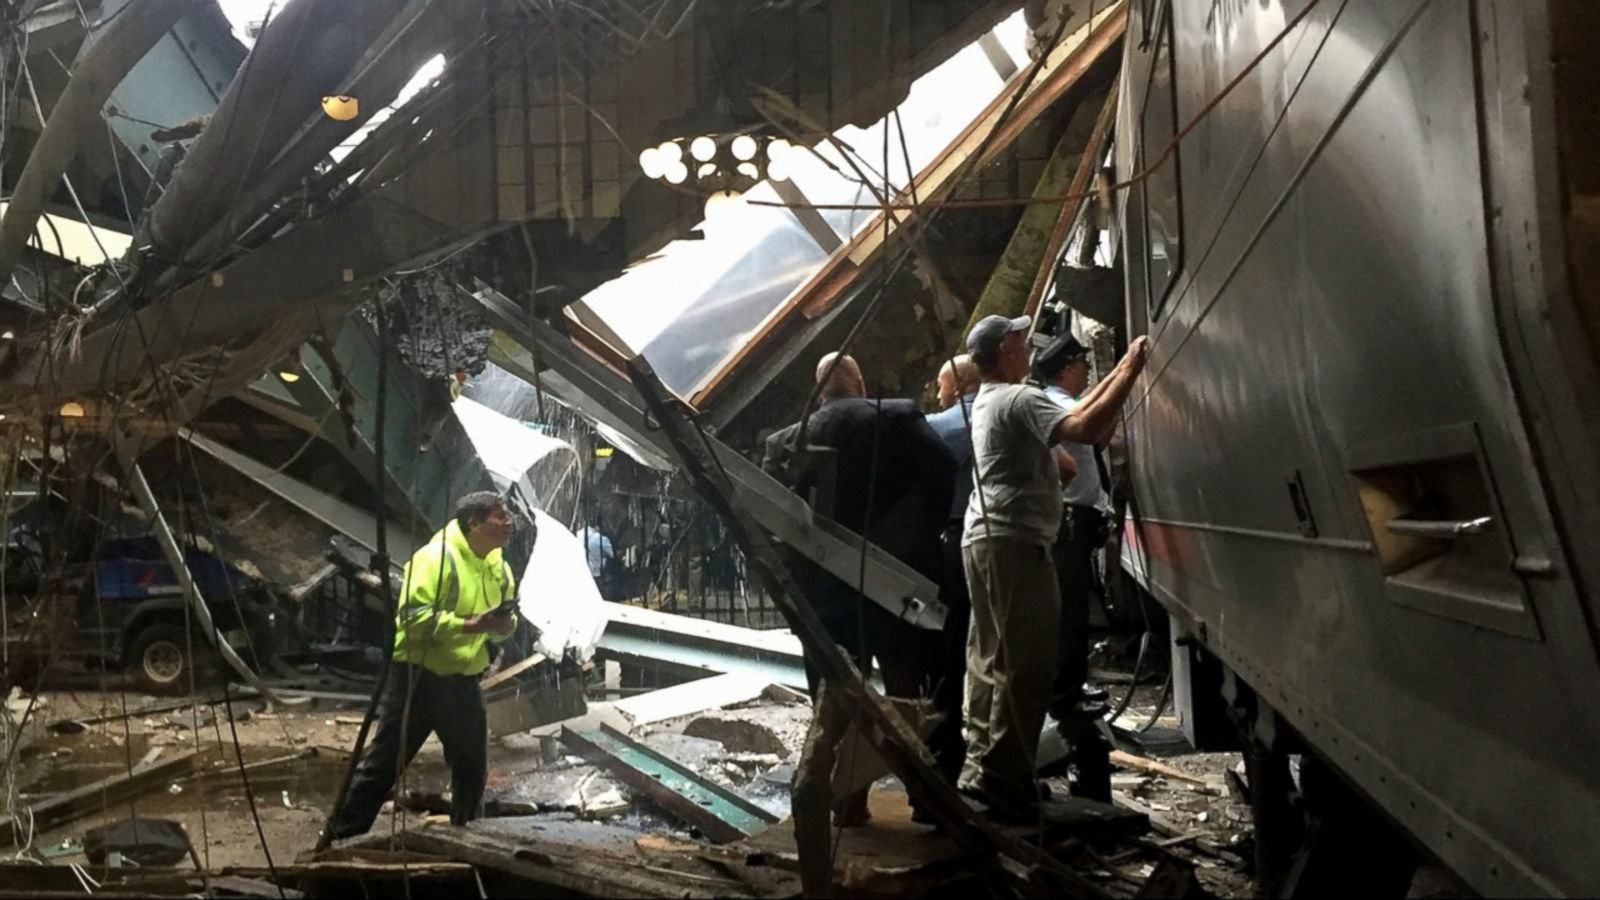 VIDEO: NJ Train Crashes in Hoboken Station During Rush Hour